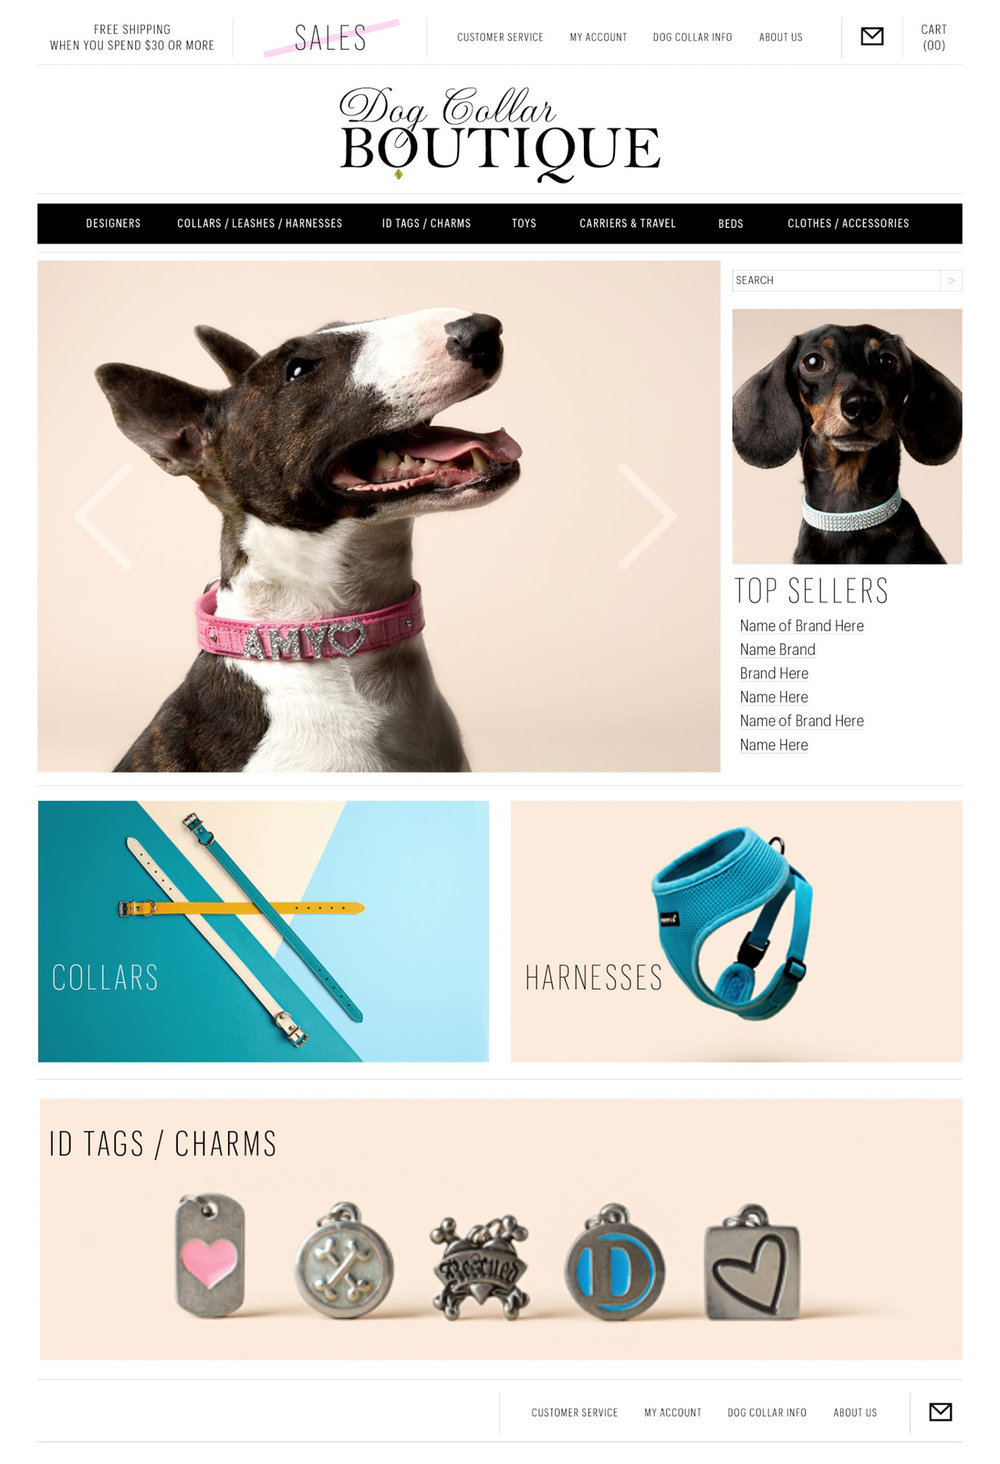 MrsSizzle_Work_Dog Collar Boutique.jpg